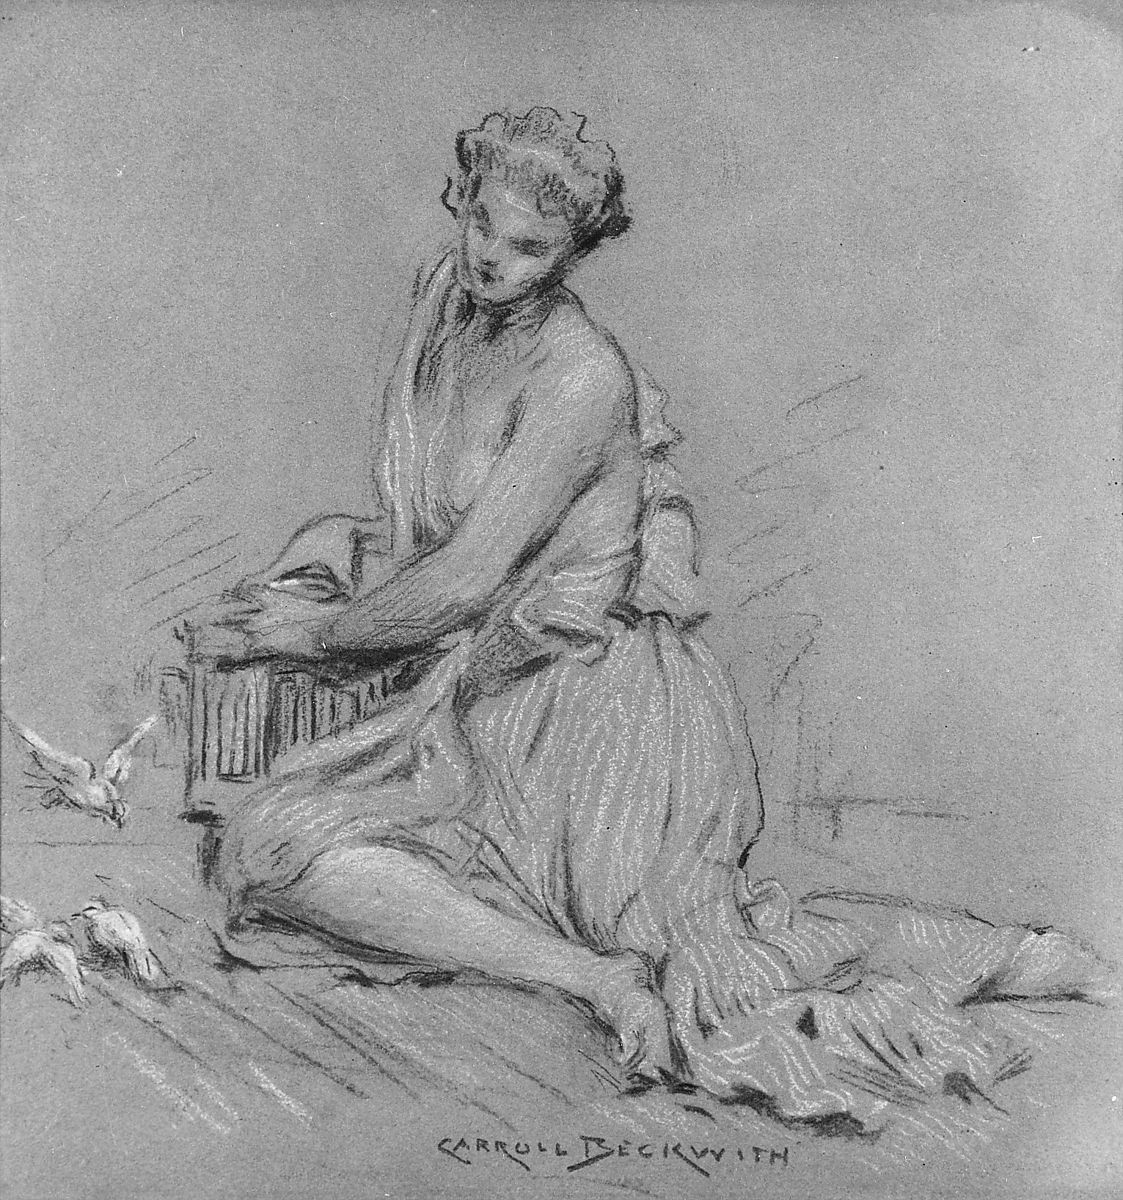 J. Carroll Beckwith | Seated Woman with Birds | American | The Met